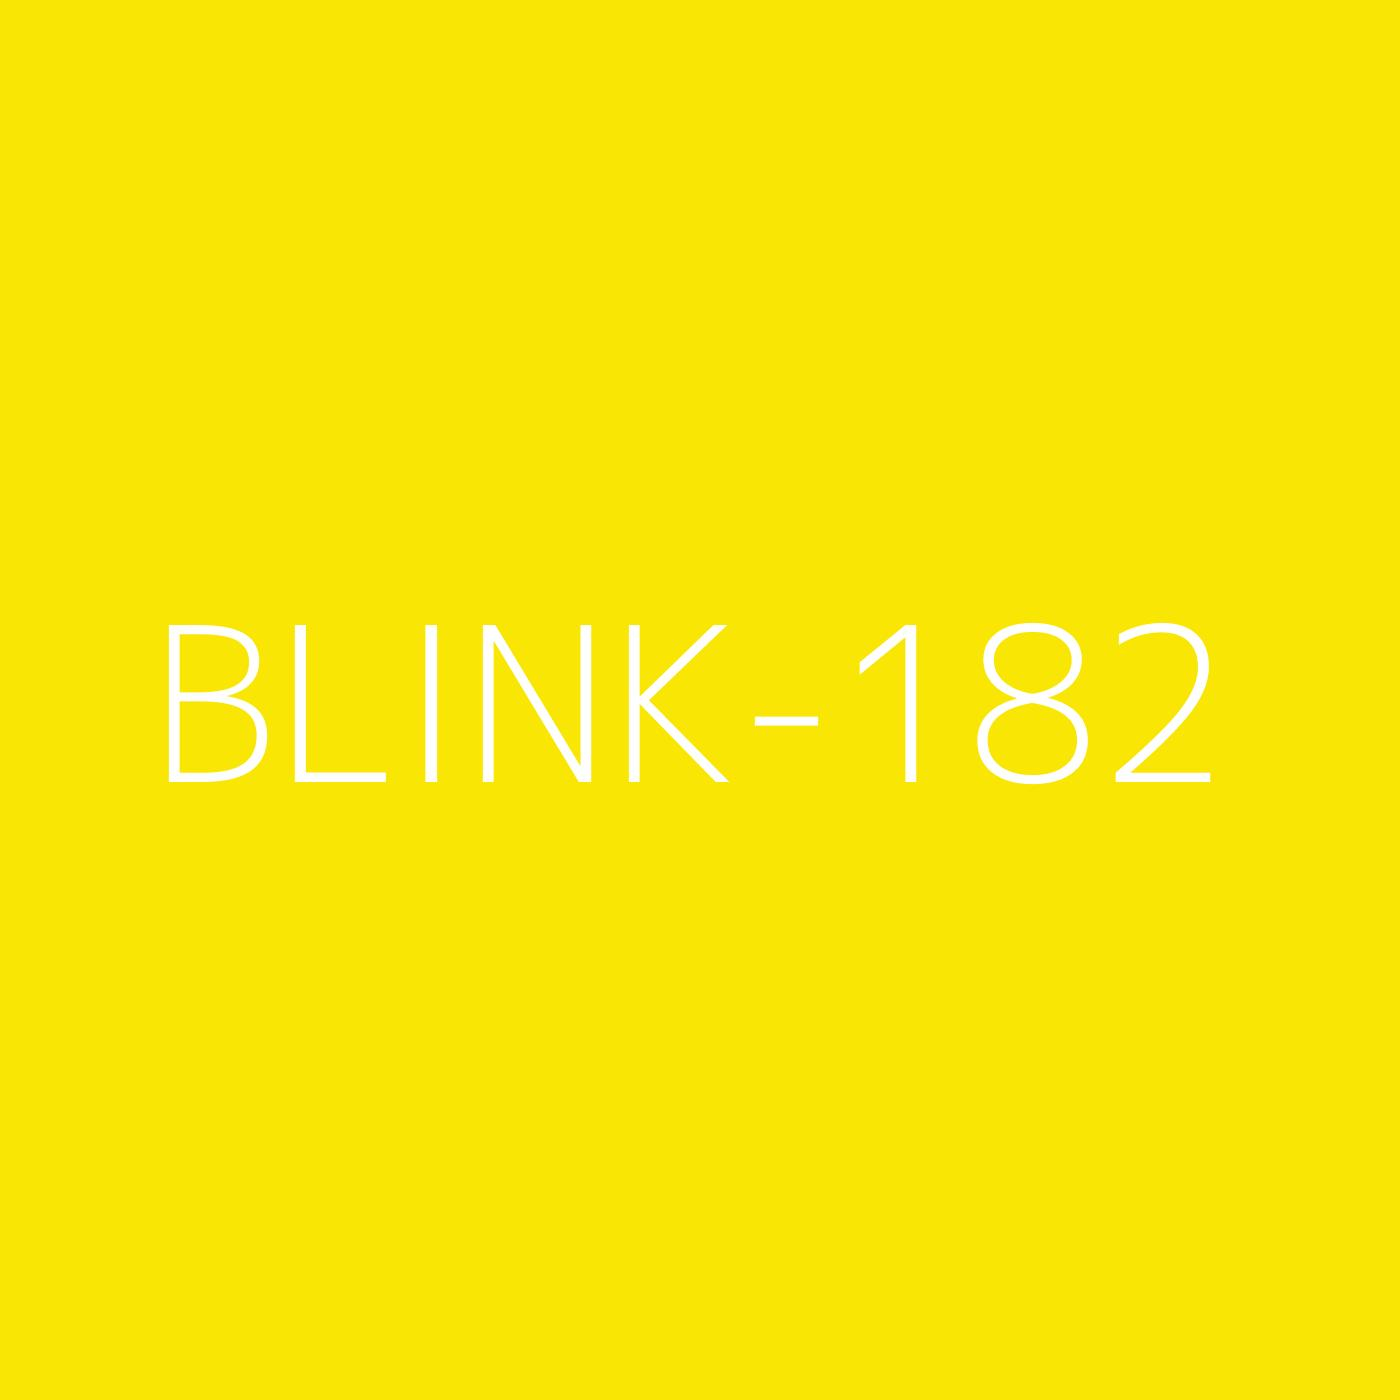 blink-182 Playlist Artwork